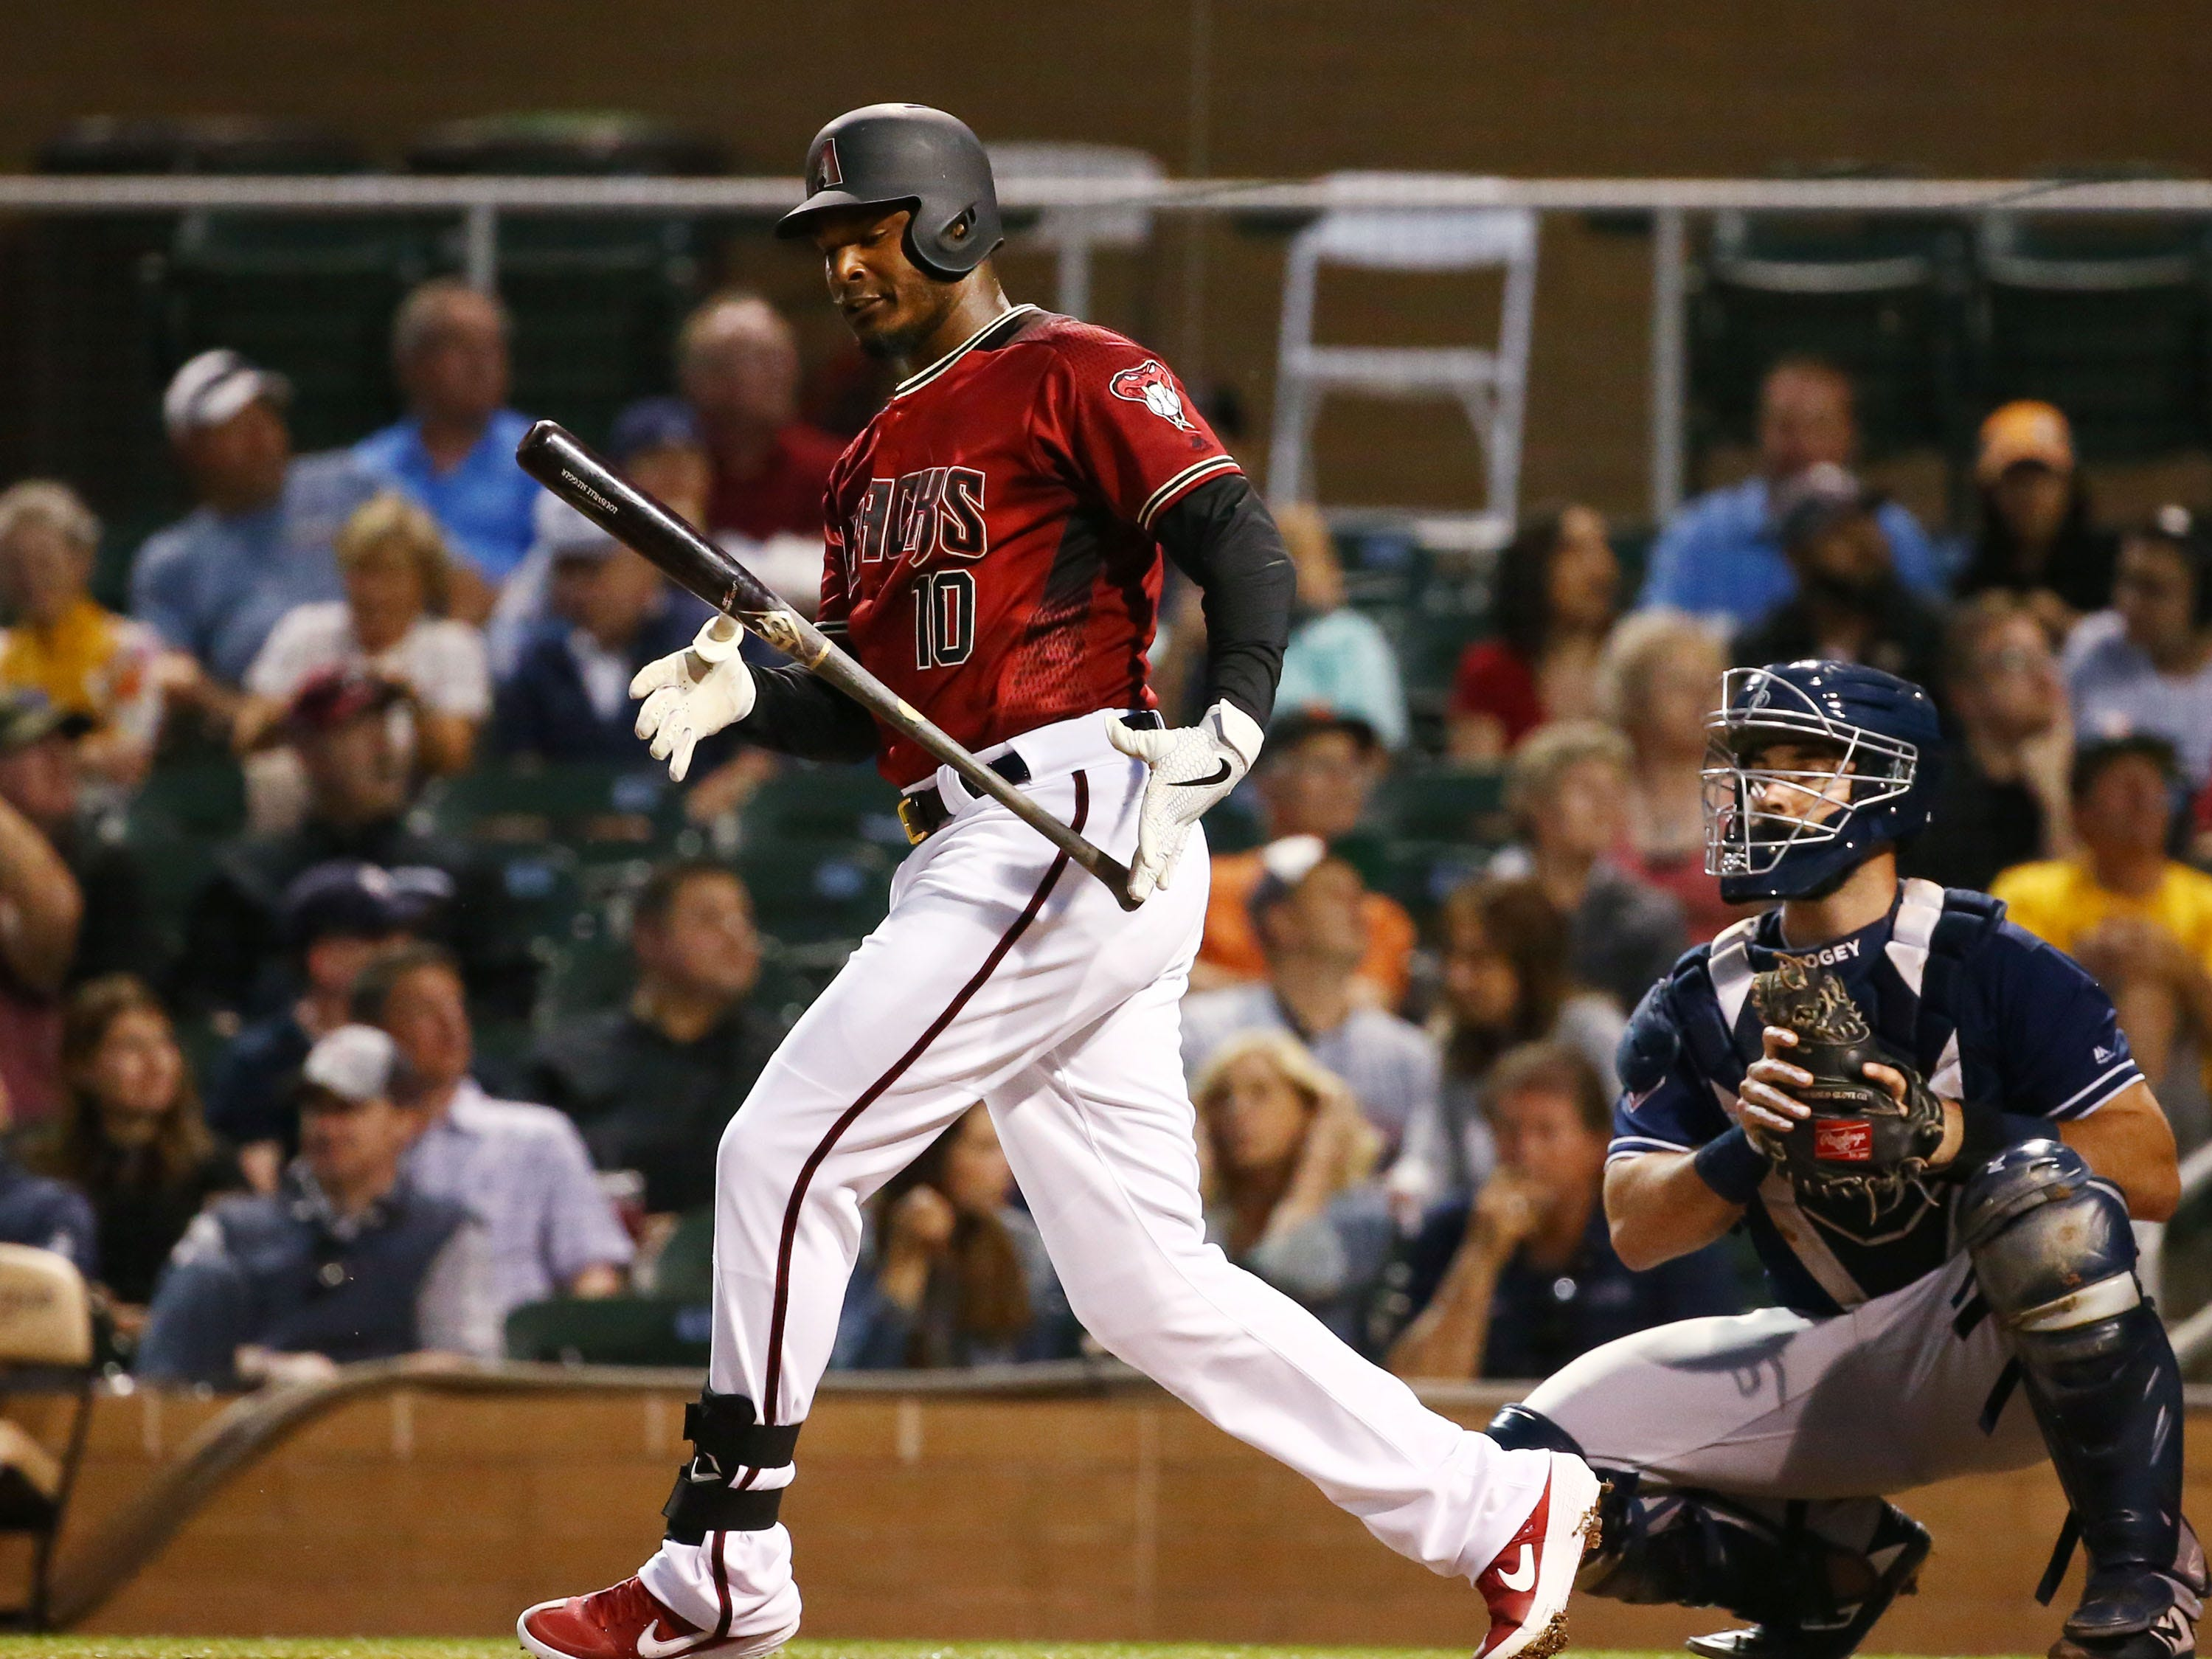 Arizona Diamondbacks center fielder Adam Jones (10) swings and misses against the San Diego Padres in the first inning during a spring training game on Mar. 19, 2019 at Salt River Fields in Scottsdale, Ariz.